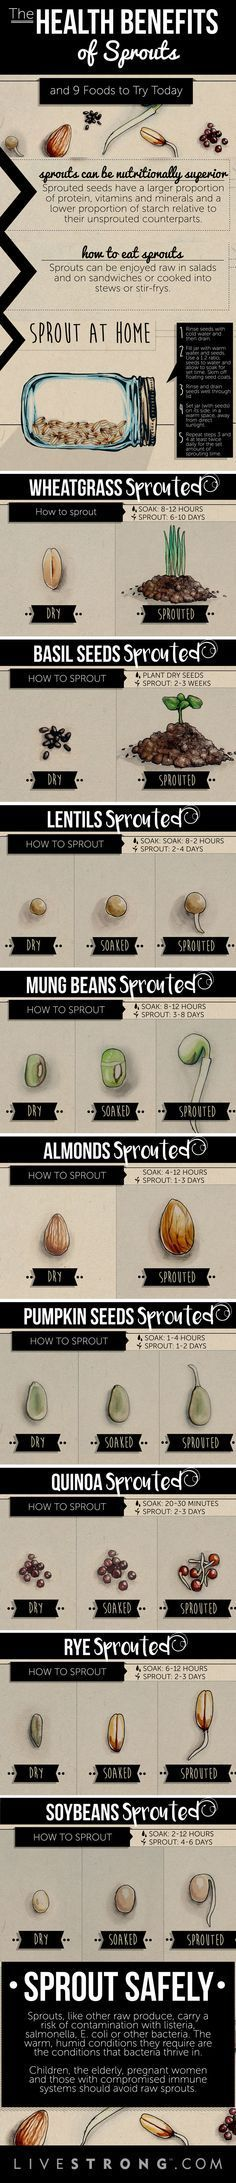 Health Benefits of Sprouts and 9 Foods to Try Today The At-Home DIY Guide to Sprouting!The At-Home DIY Guide to Sprouting! Health And Nutrition, Health Tips, Diy Guide, Raw Food Recipes, Healthy Recipes, Vegetable Recipes, Get Healthy, Food Hacks, Good To Know